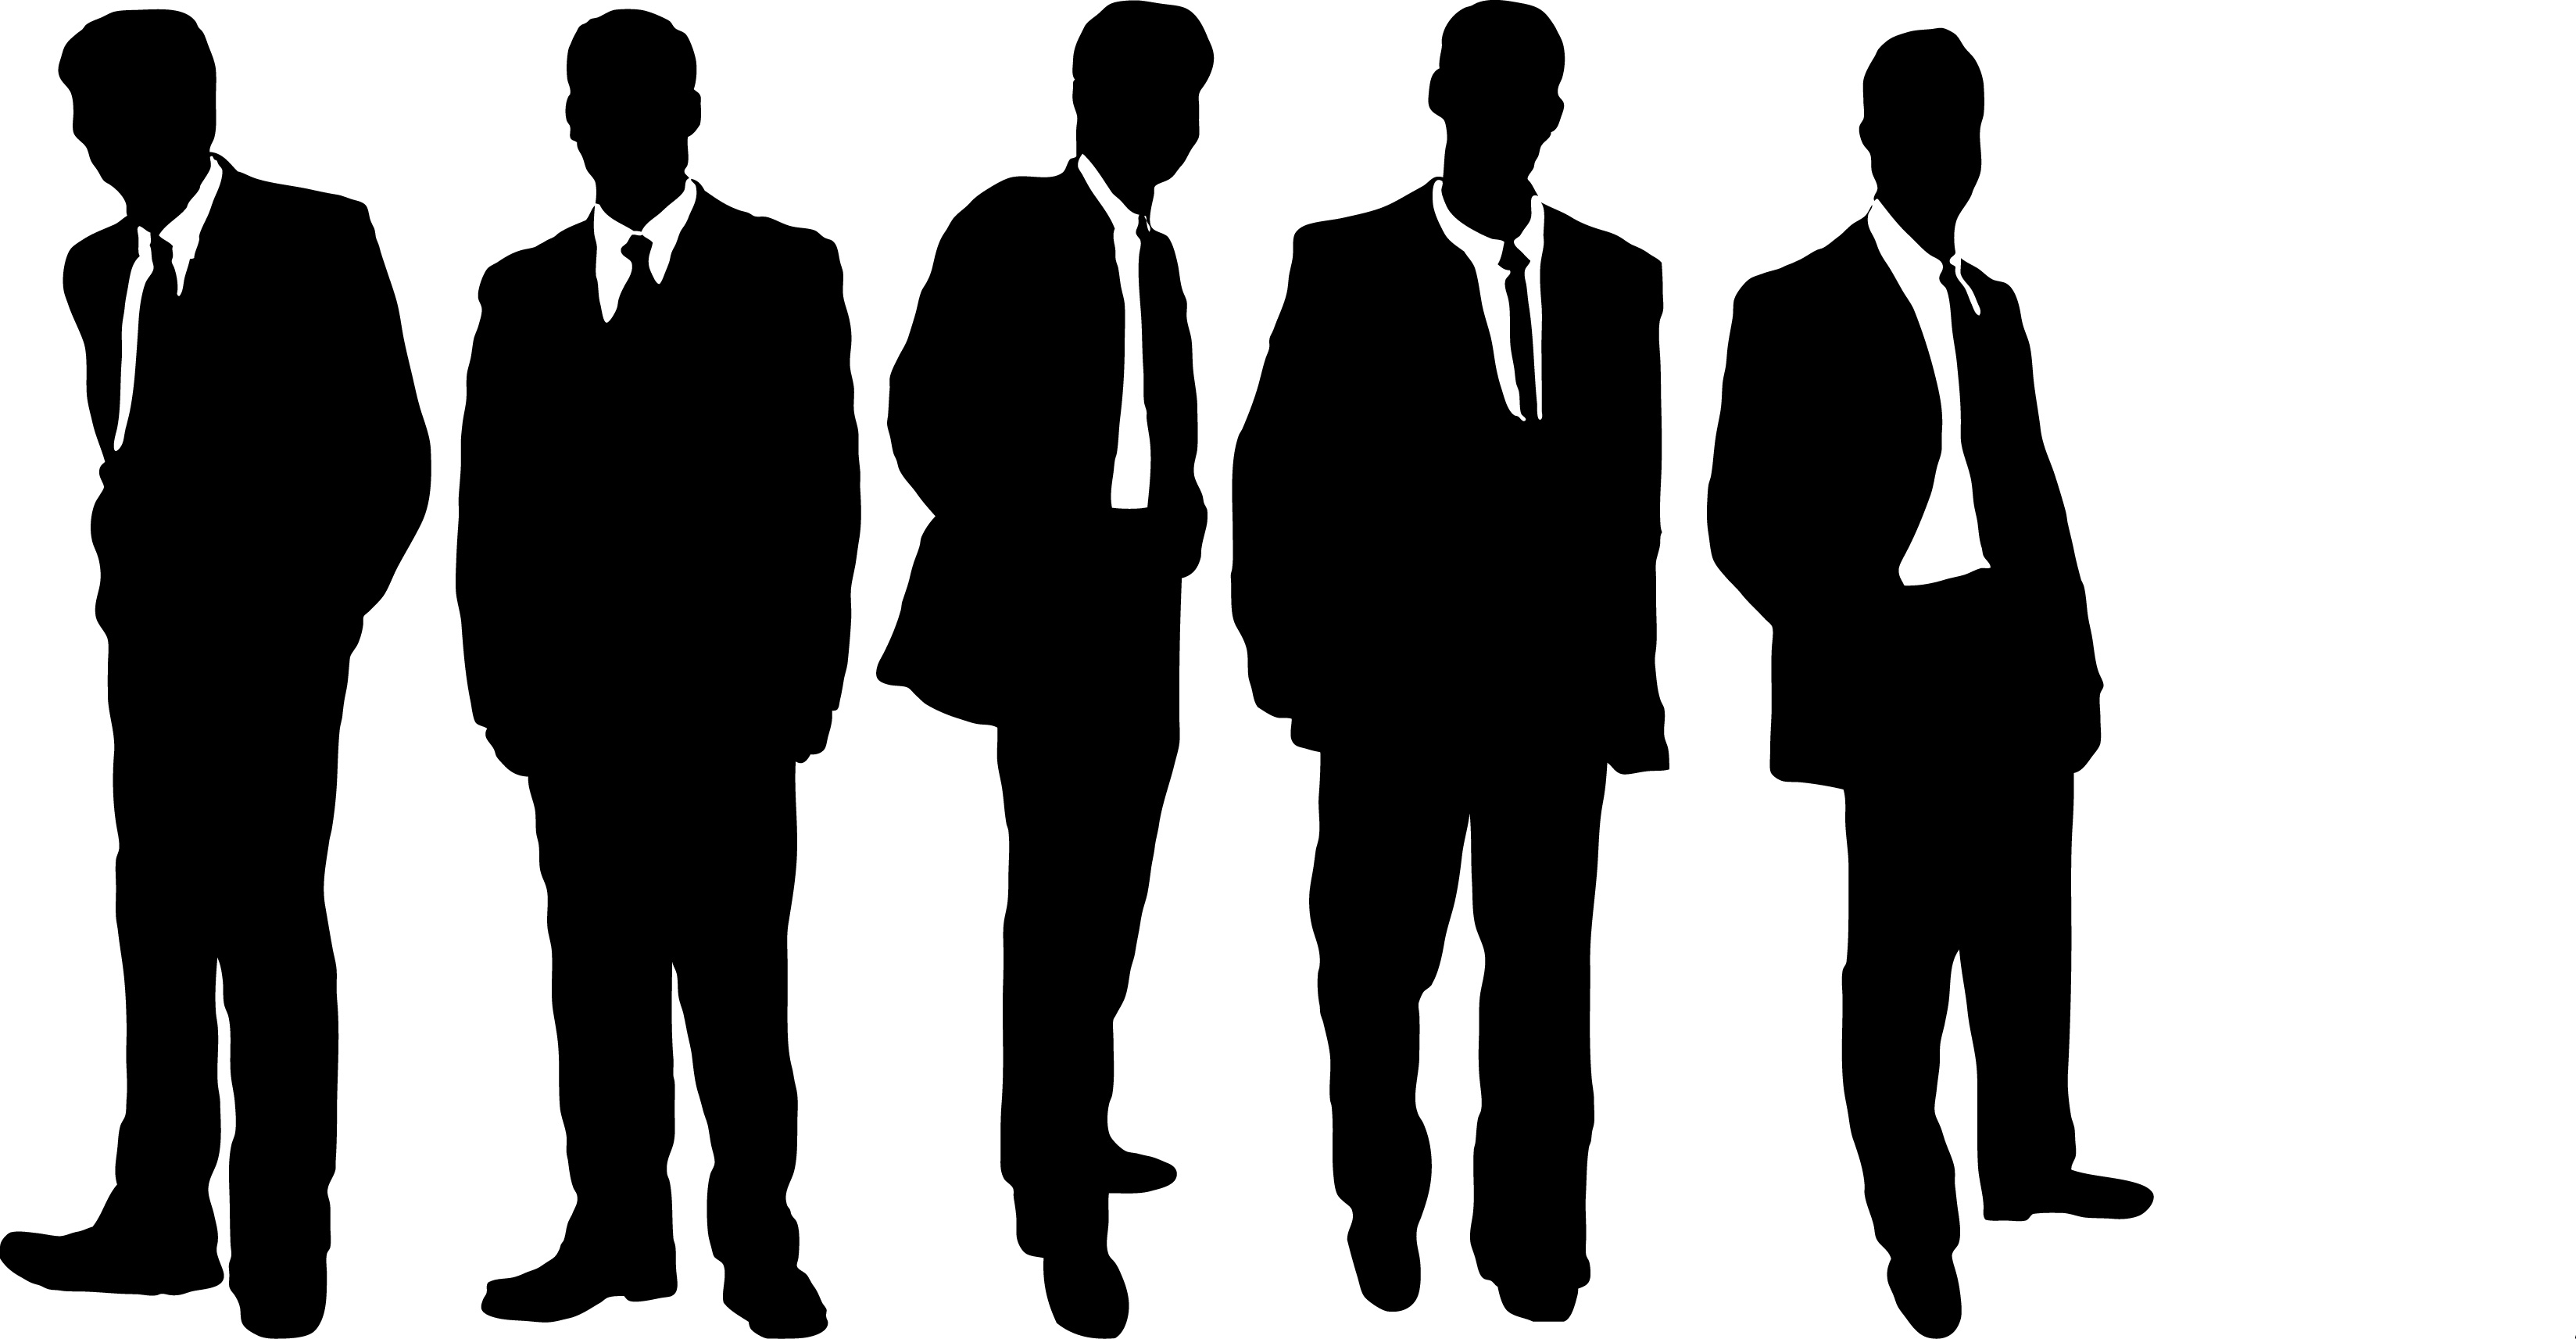 clipart group of people clipart panda free clipart images rh clipartpanda com Group of Business People Clip Art Group of People Clip Art Transparent